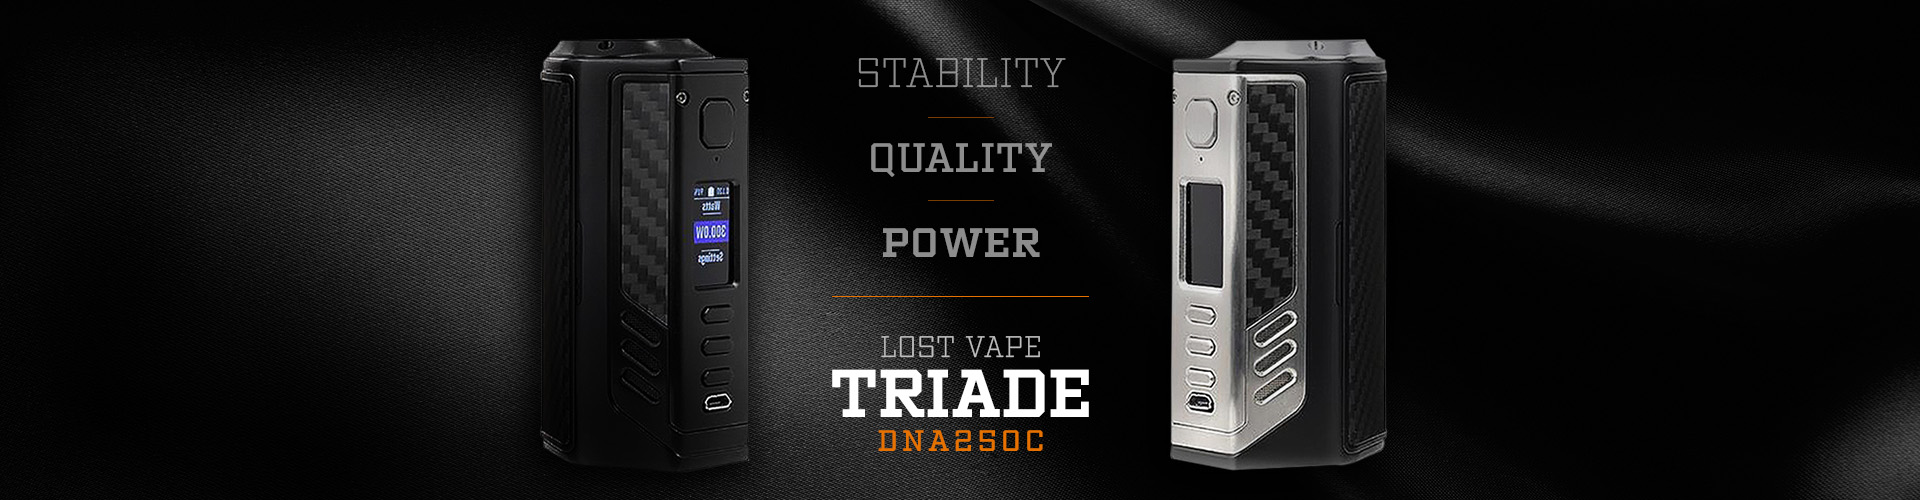 Home - VapeCraft Premium Vaping Products & Supplies in Greece